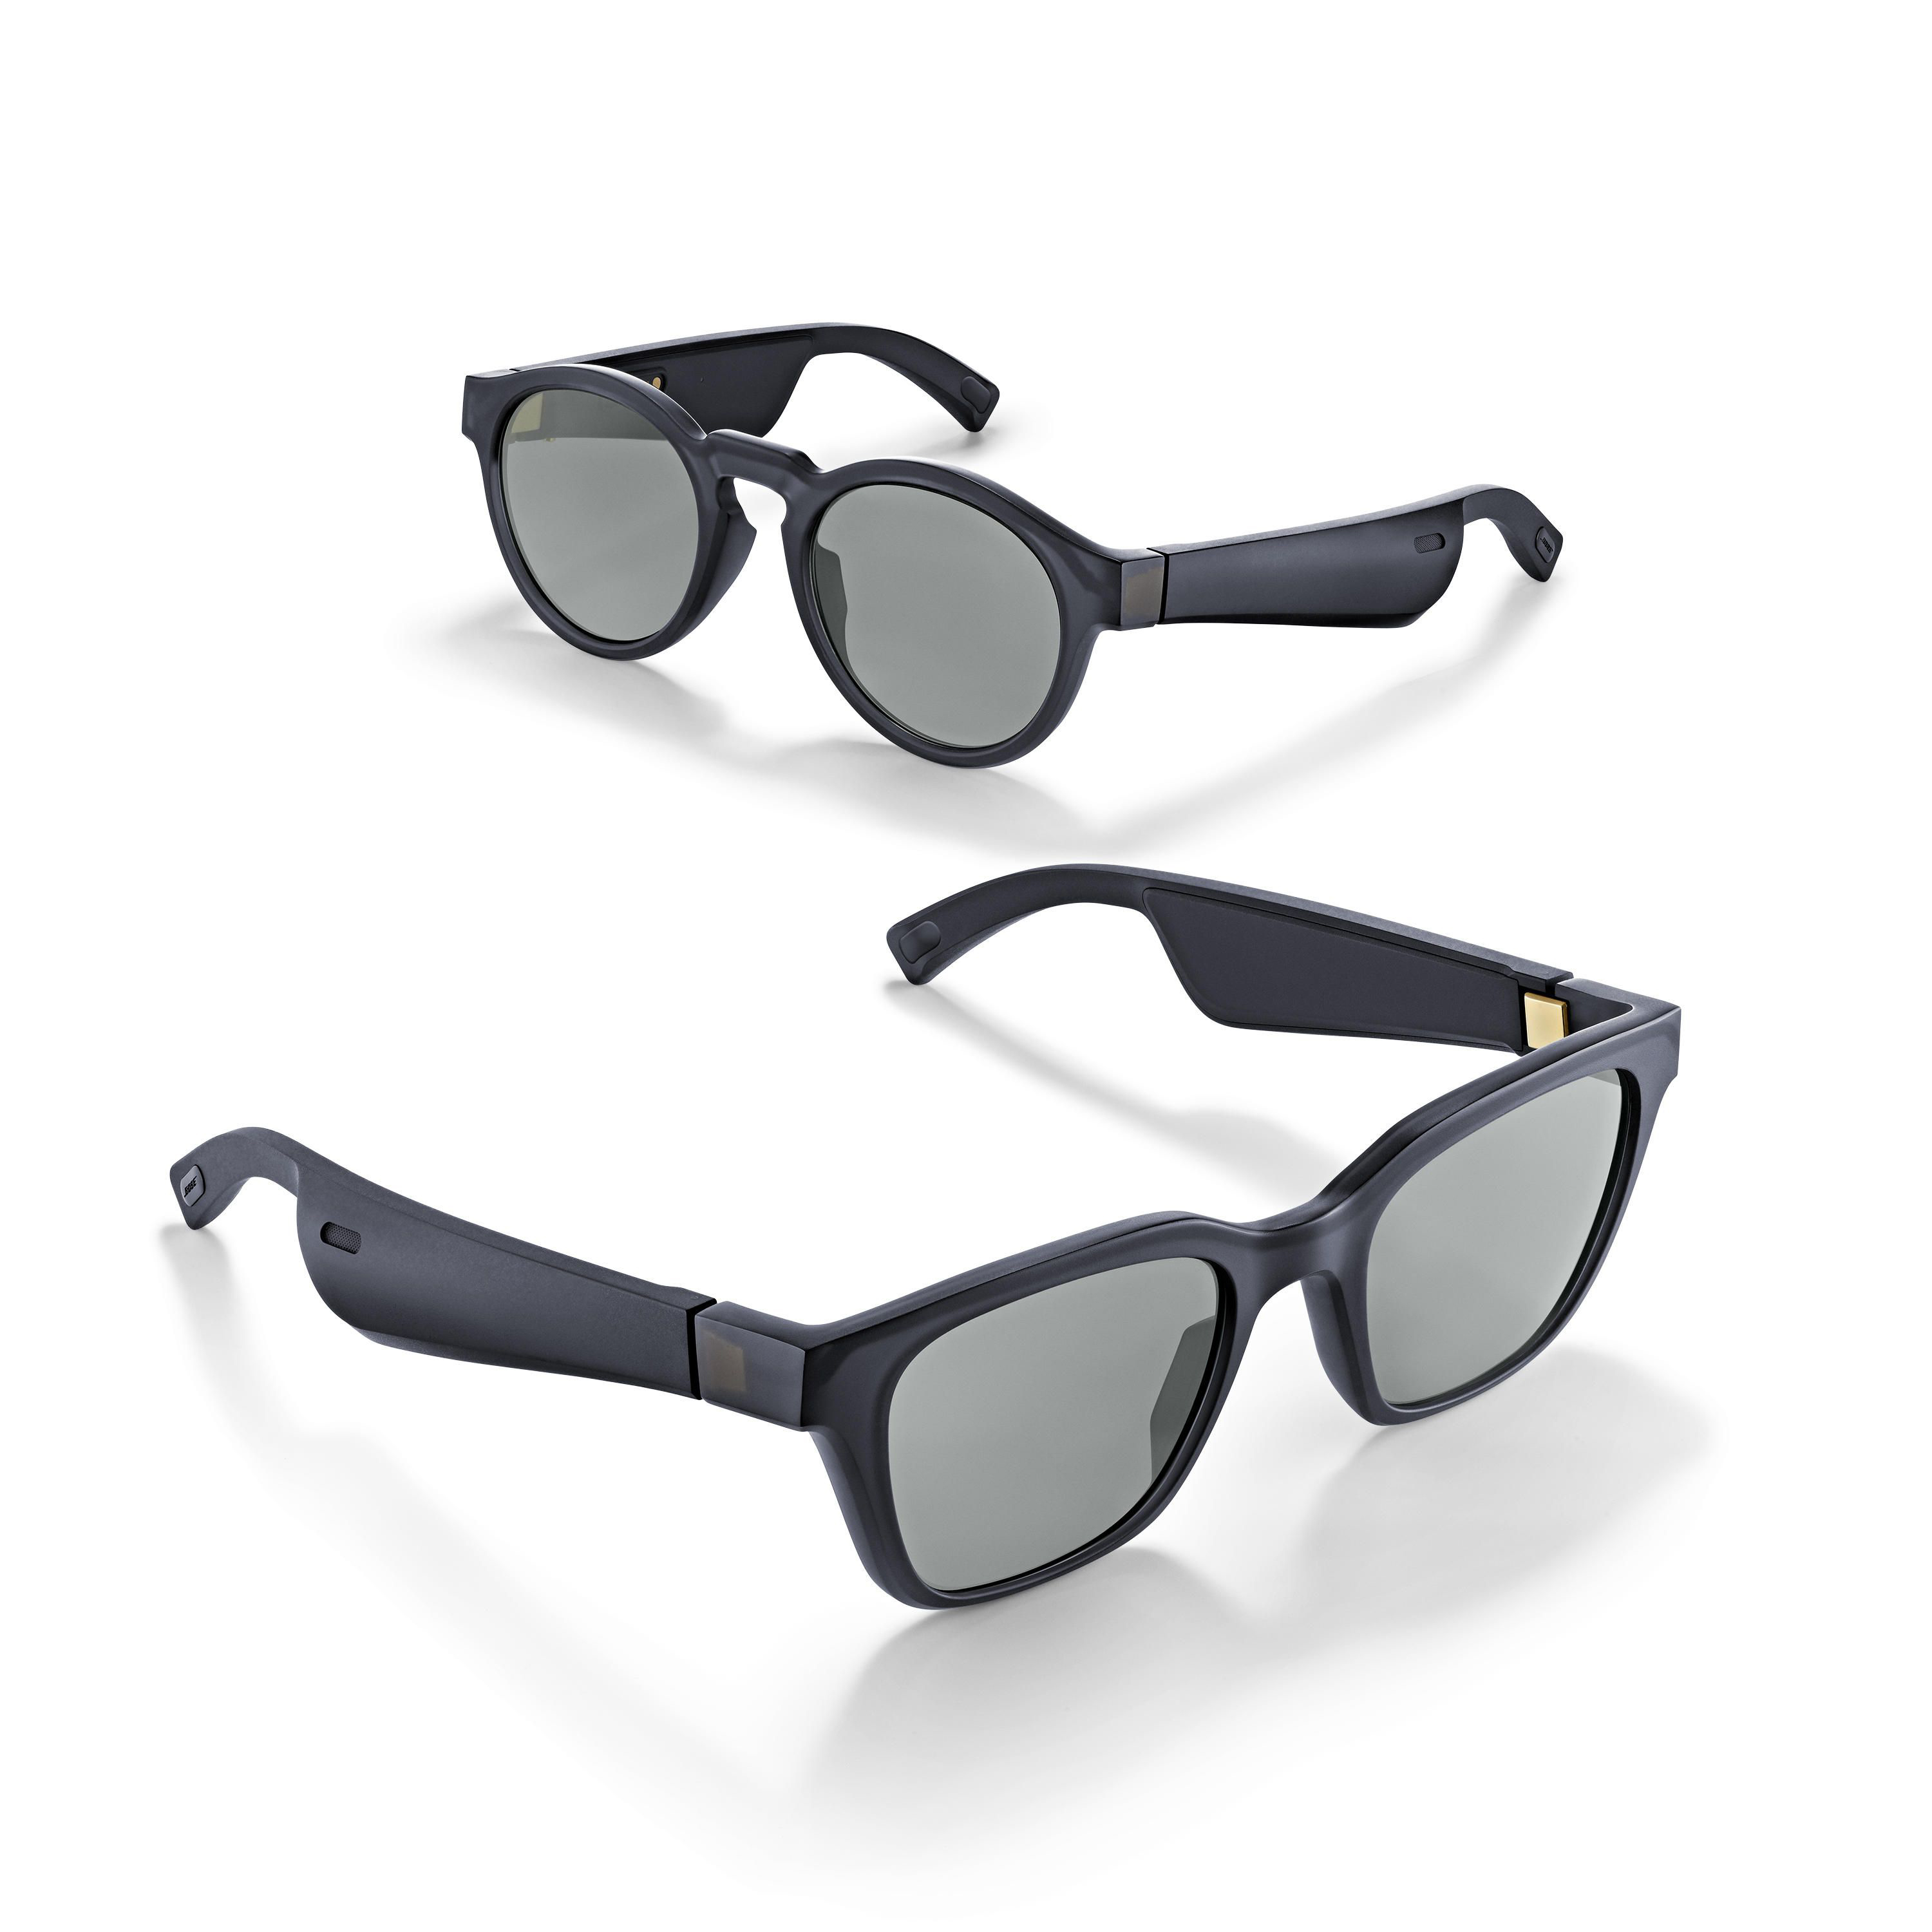 2d1ed8ed5e5c Bose Frames bring audio and augmented reality to sunglasses ...